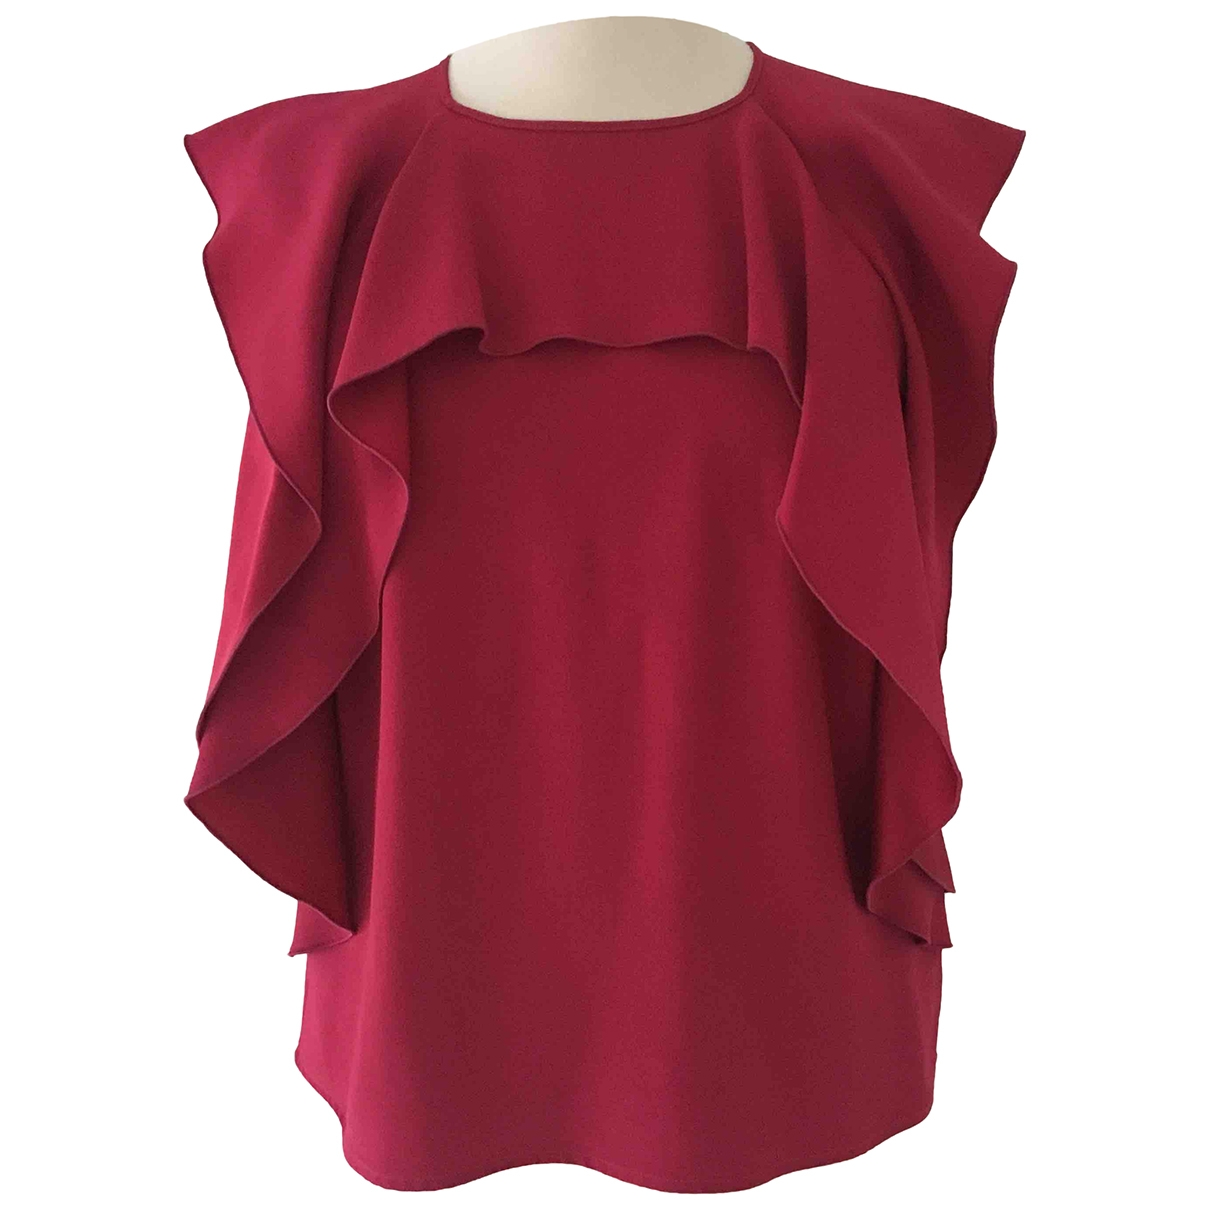 Red Valentino Garavani \N Pink  top for Women 36 FR